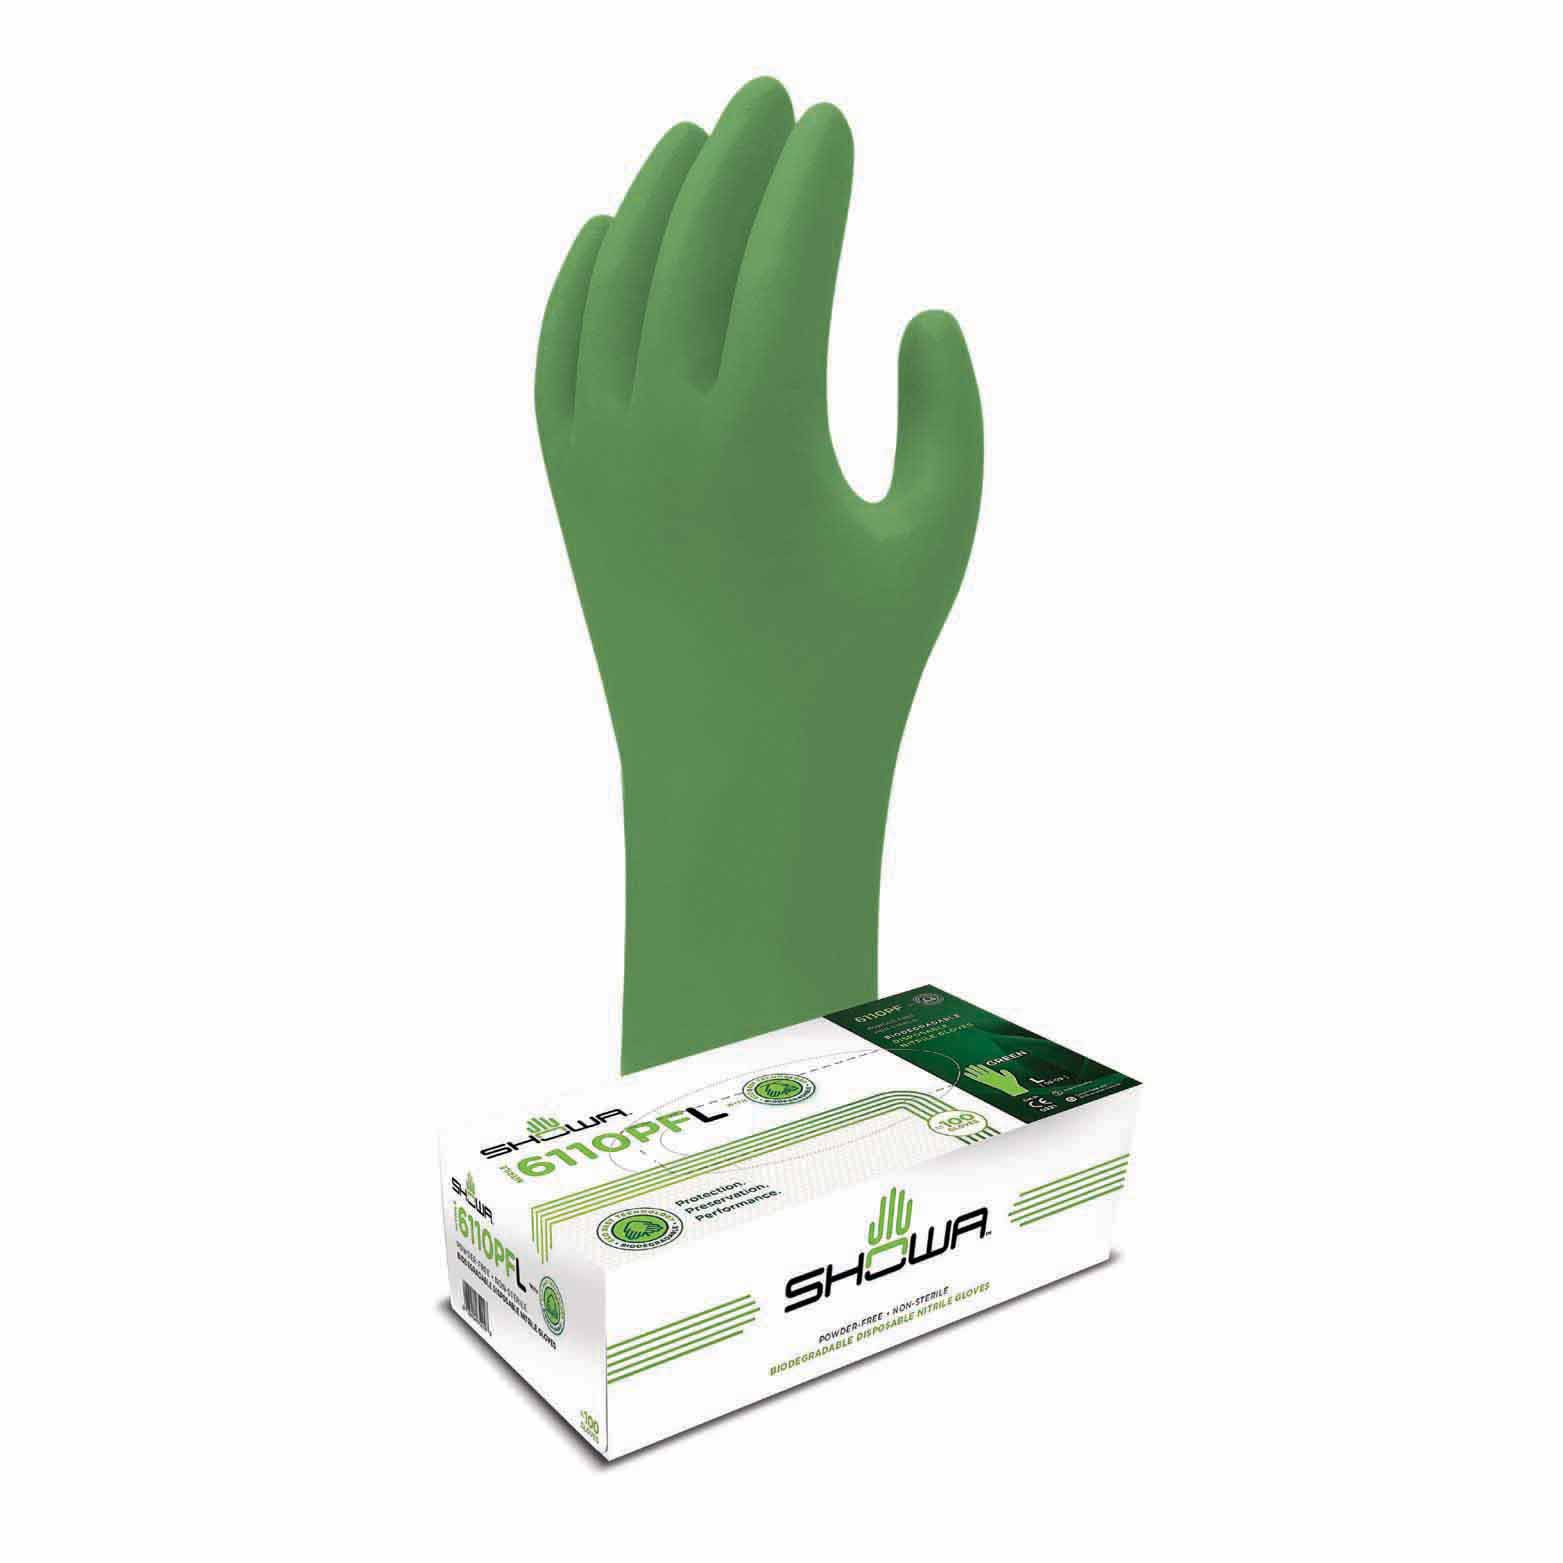 Gloves - Nitrile - Green-Dex Biodegradable